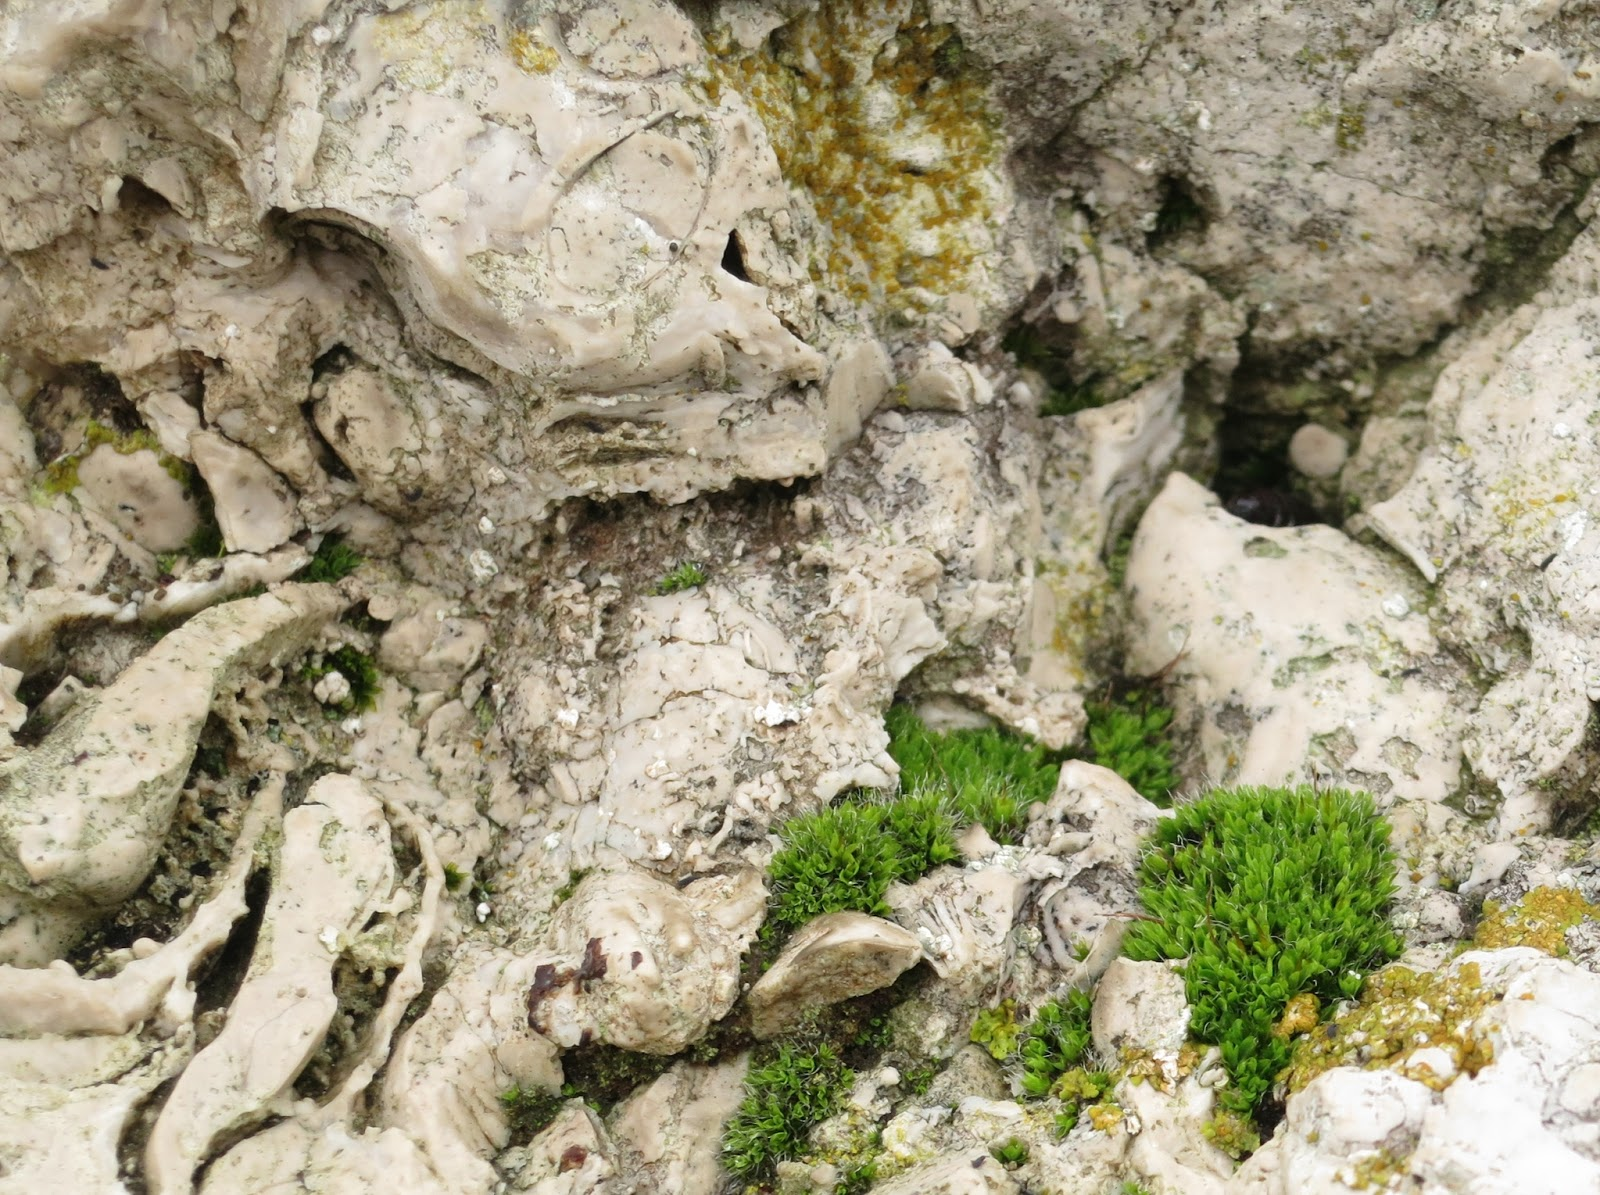 Clumps of short, small, bright green plants on swirls of grey and white rocks.